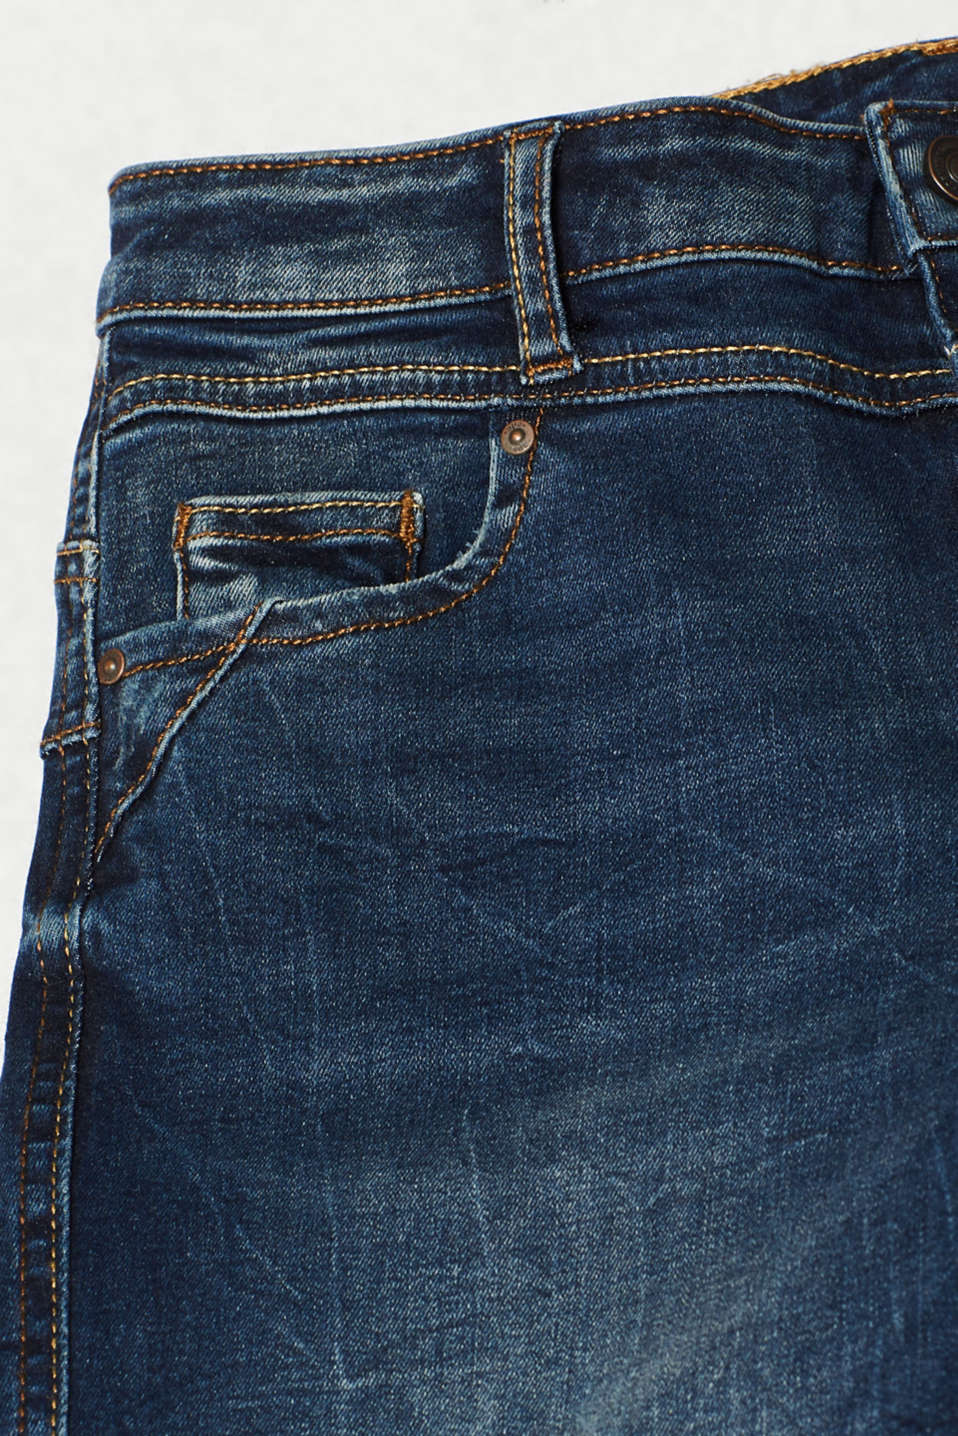 With TENCEL™: Shaping jeans with two-way stretch, BLUE DARK WASH, detail image number 4